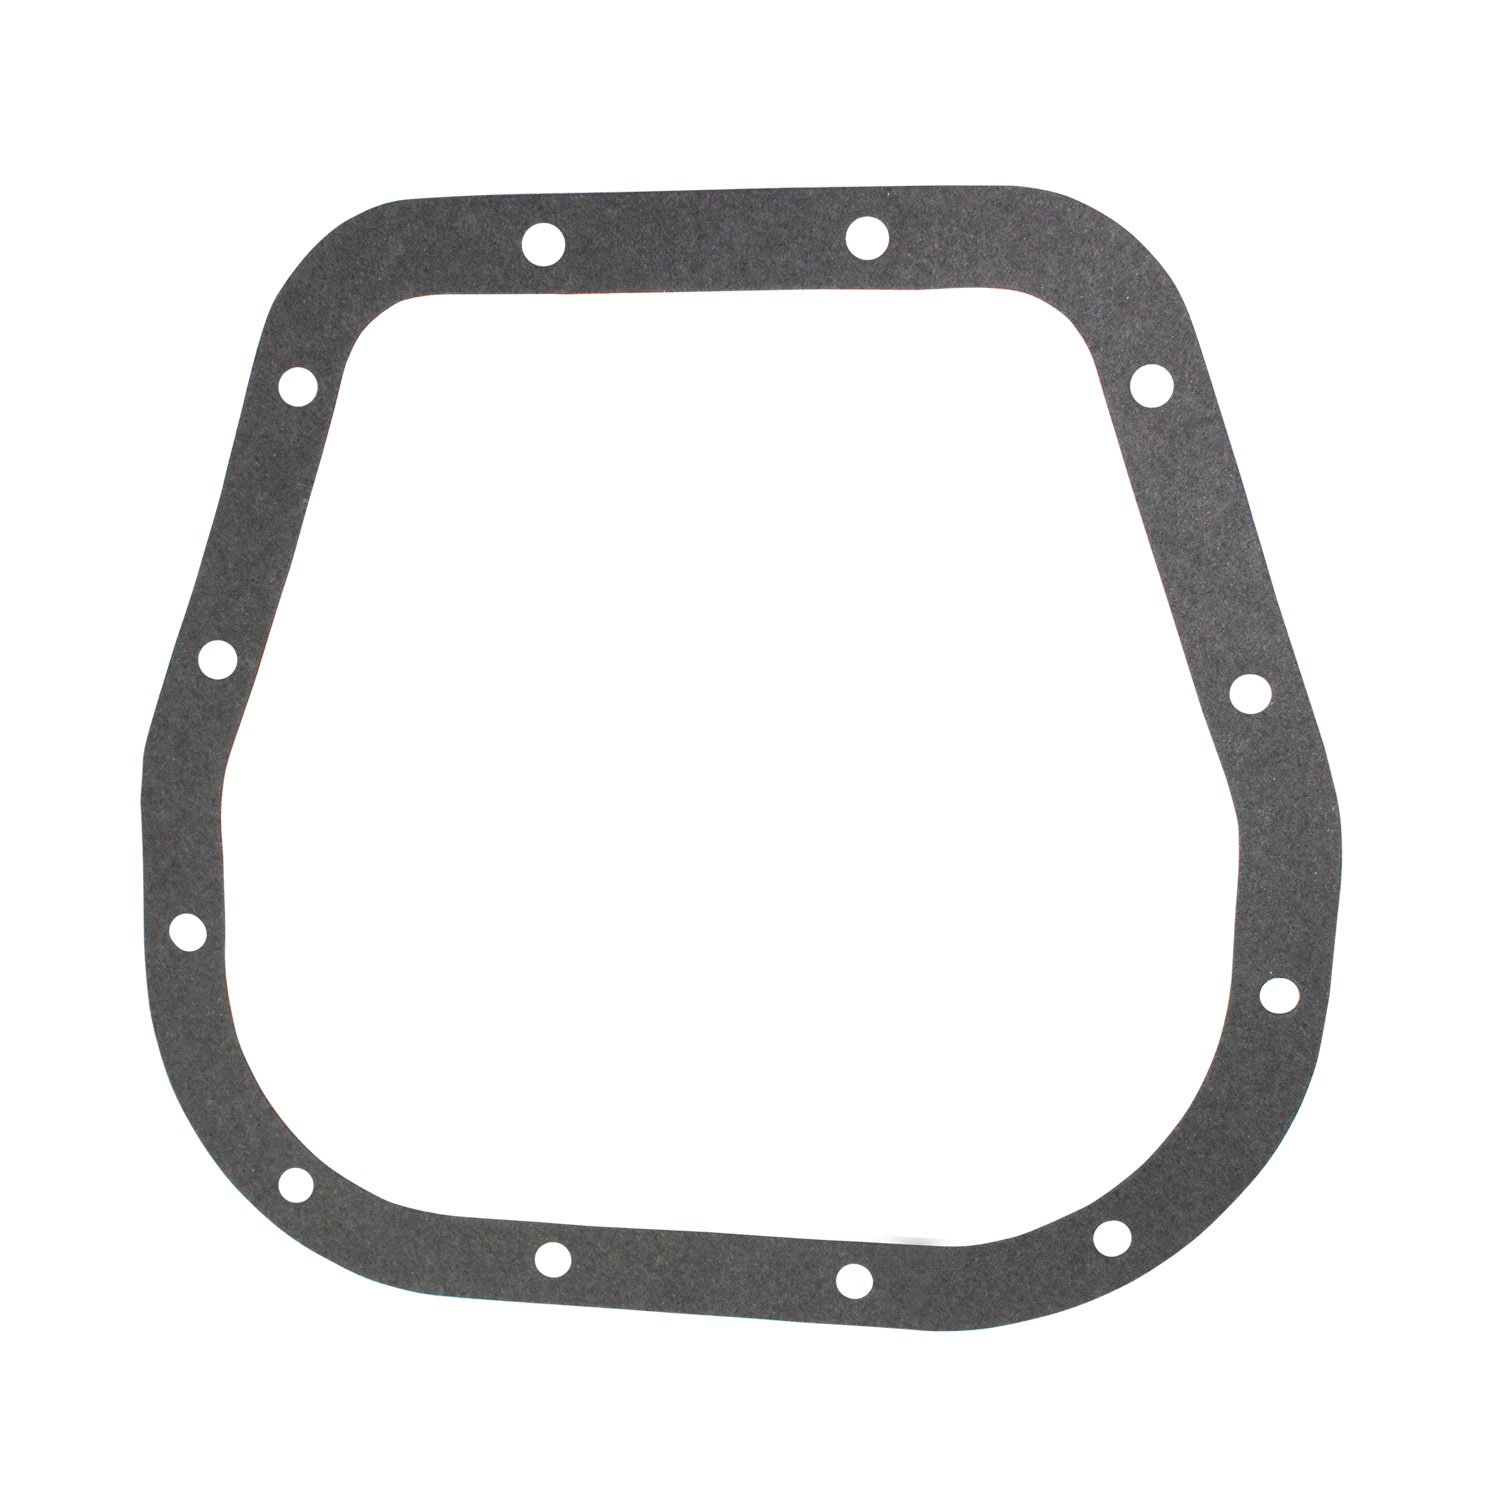 Mota Performance A96968 12 Bolt Differential Cover Gasket for Ford 9.75 R.G.